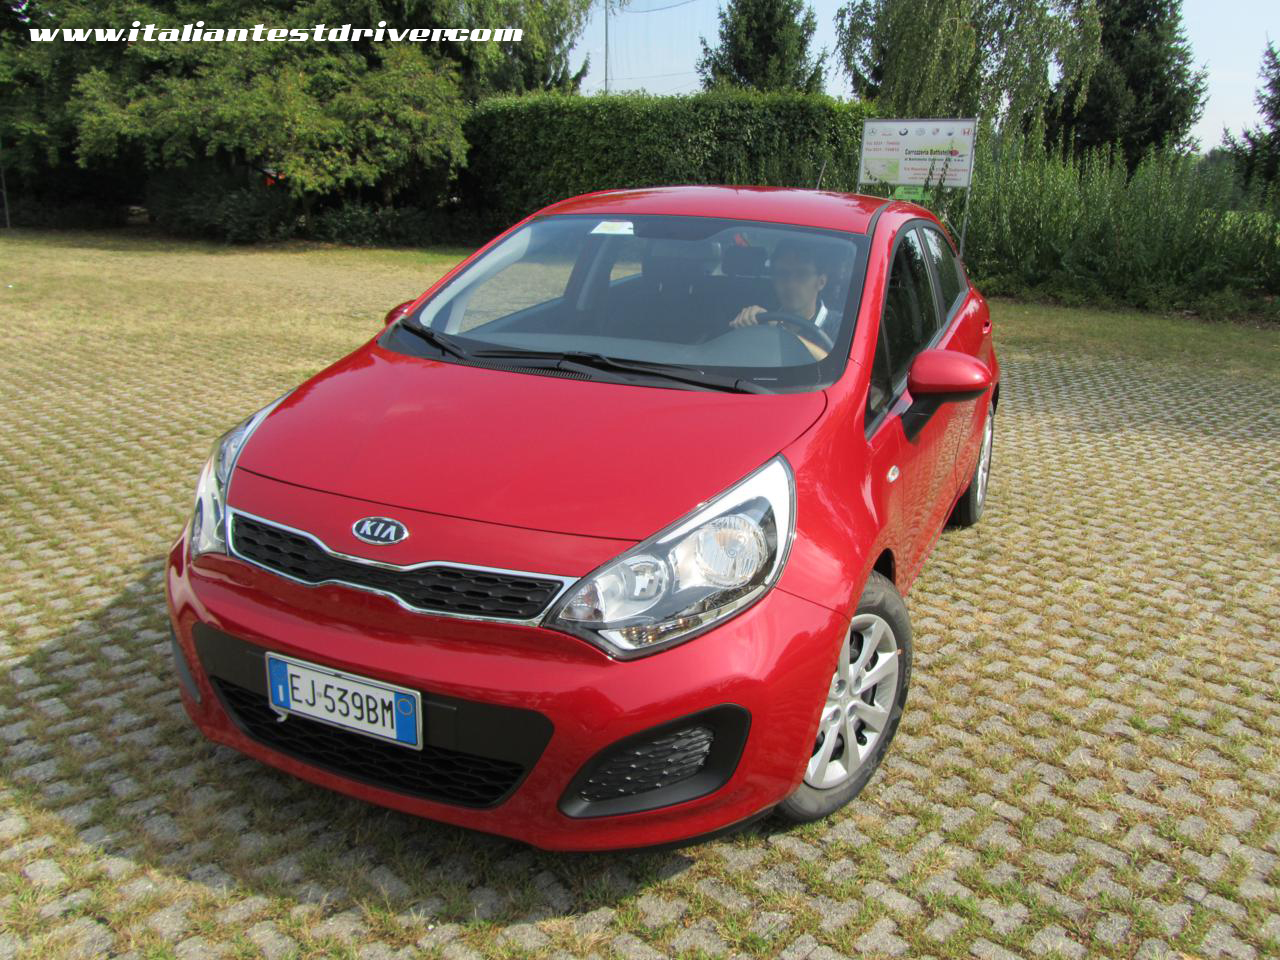 test drive kia rio lx 1 2 da 85 cv italiantestdriver. Black Bedroom Furniture Sets. Home Design Ideas